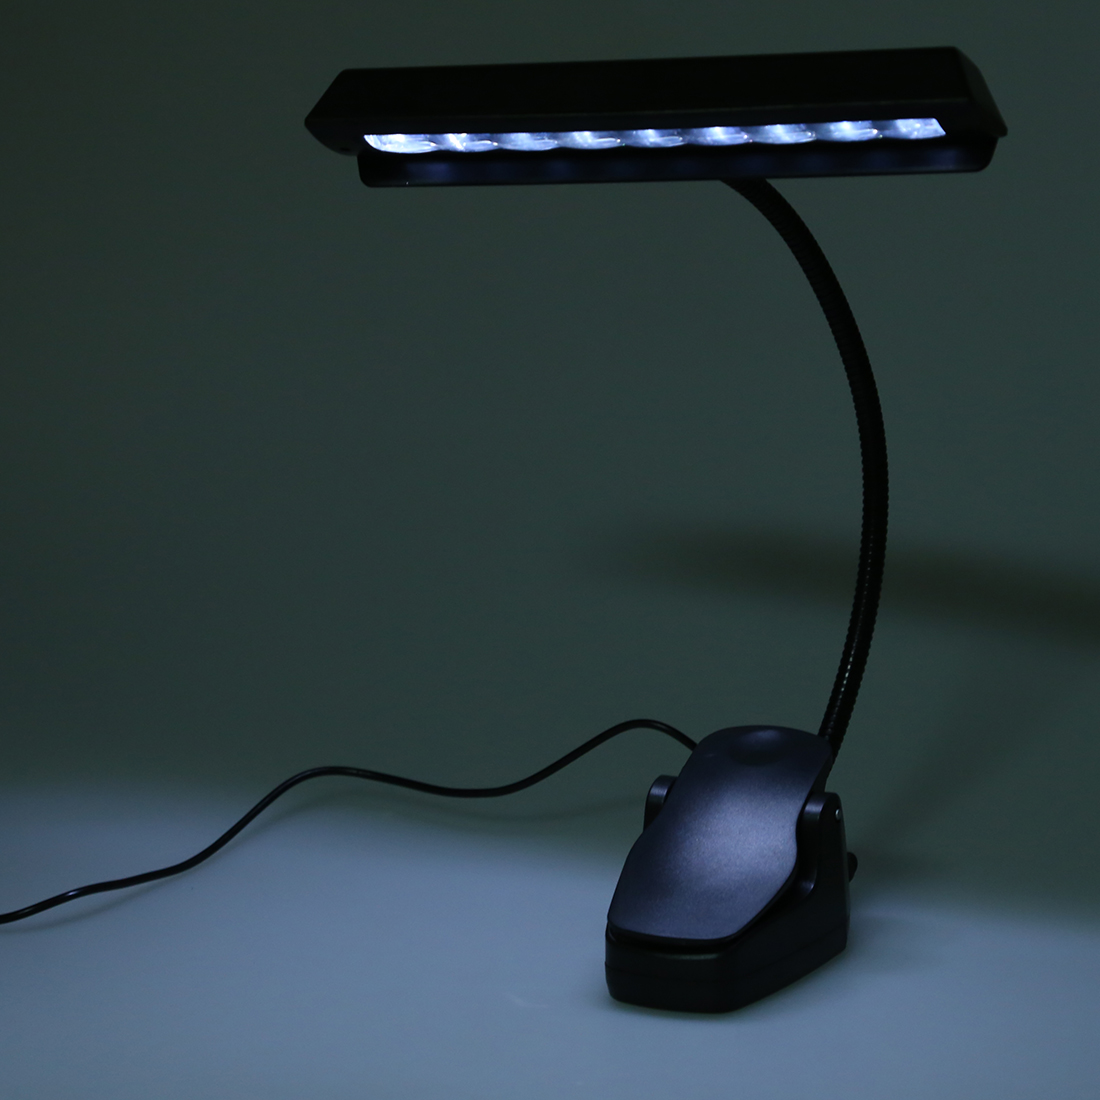 728h3 r 999 9led leselicht lampen weisses licht clip usb schreibtisch fuer buero ebay. Black Bedroom Furniture Sets. Home Design Ideas